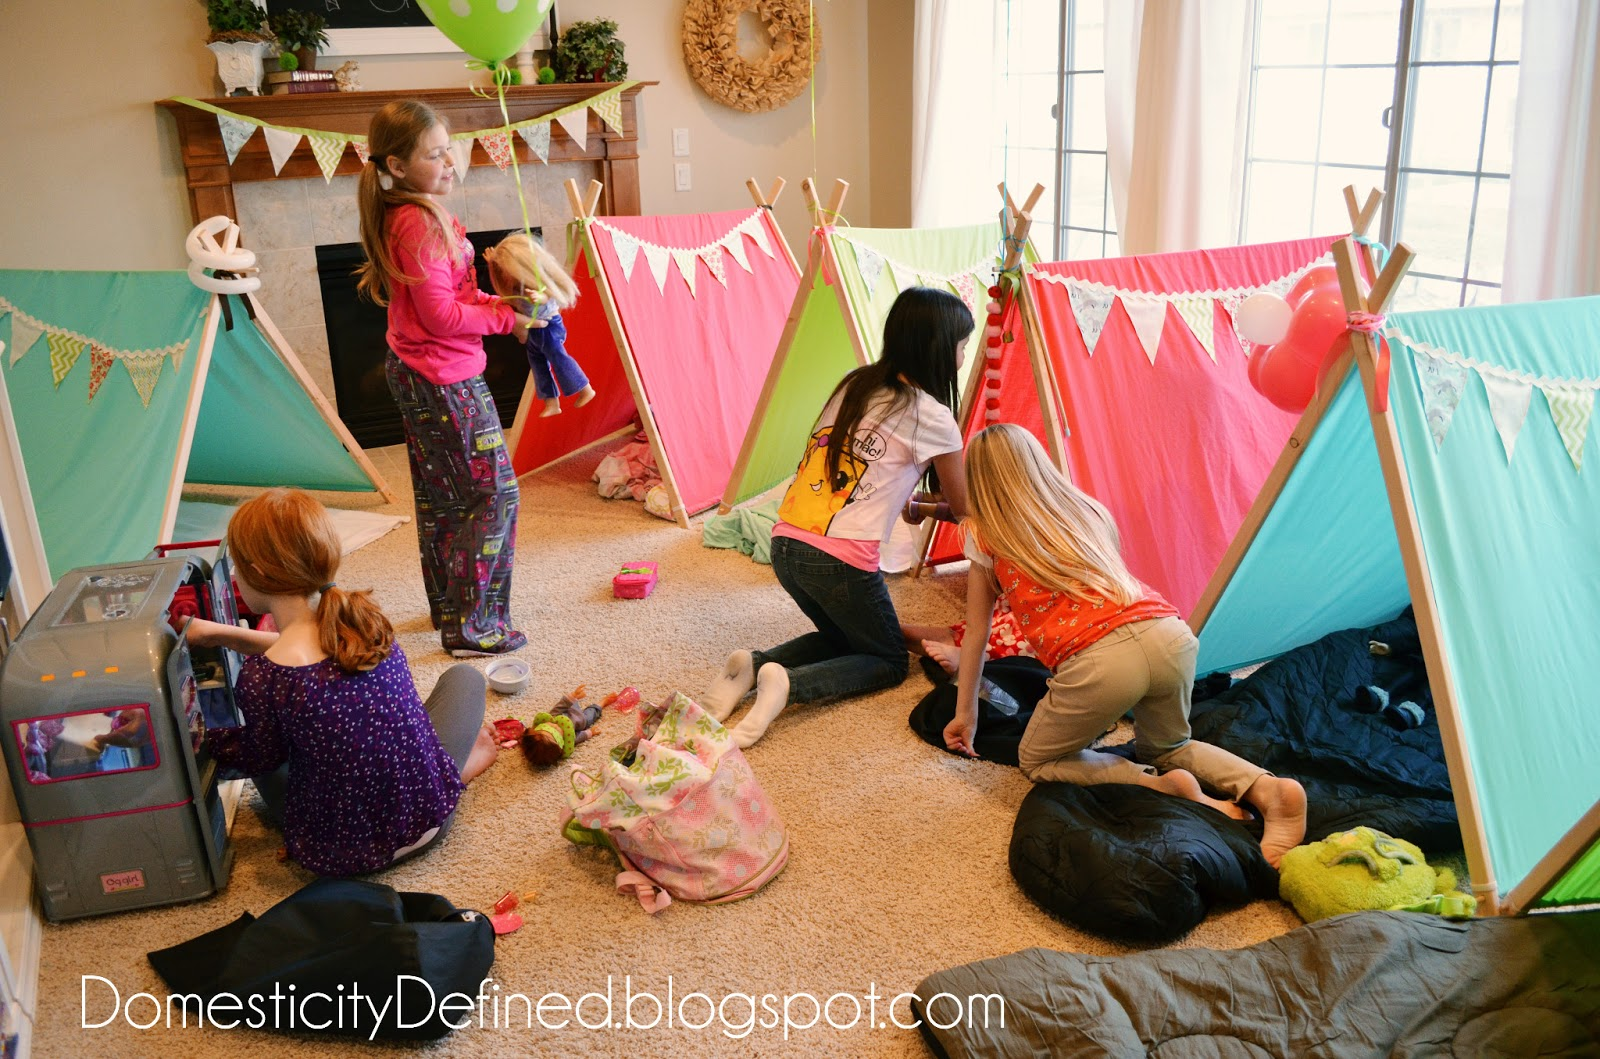 Domesticity emily 39 s glamping birthday party - Th party theme ideas ...